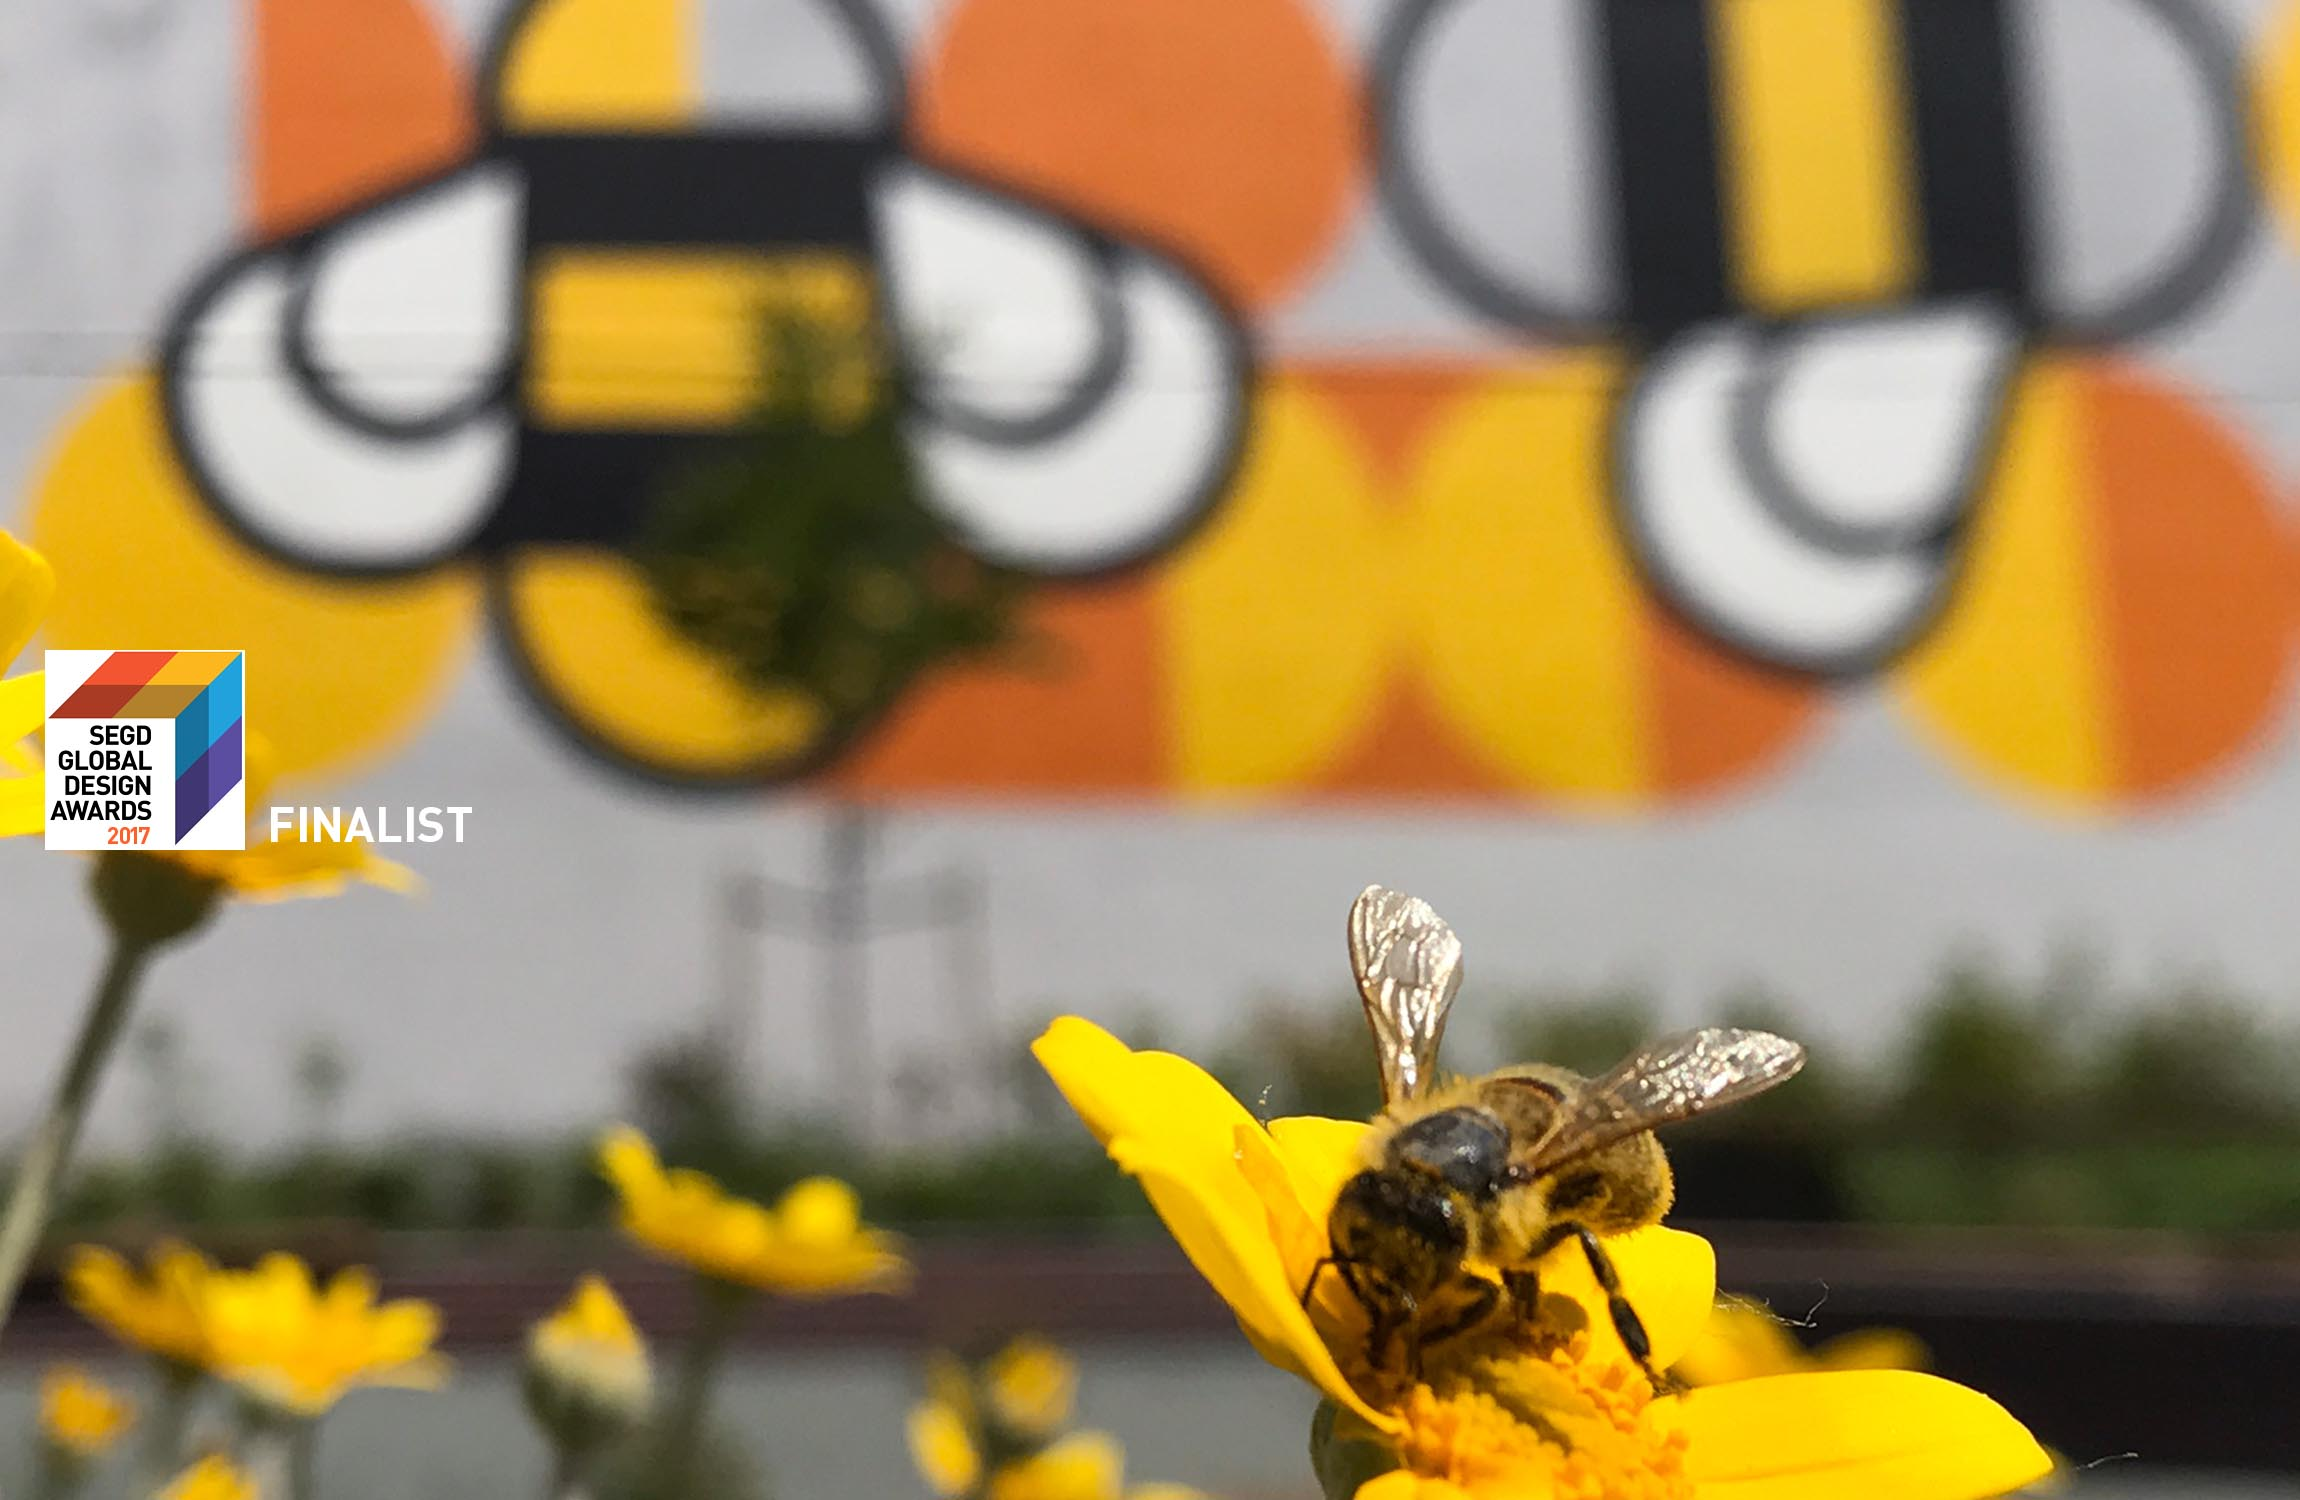 bee_mural_award_win_segd-image